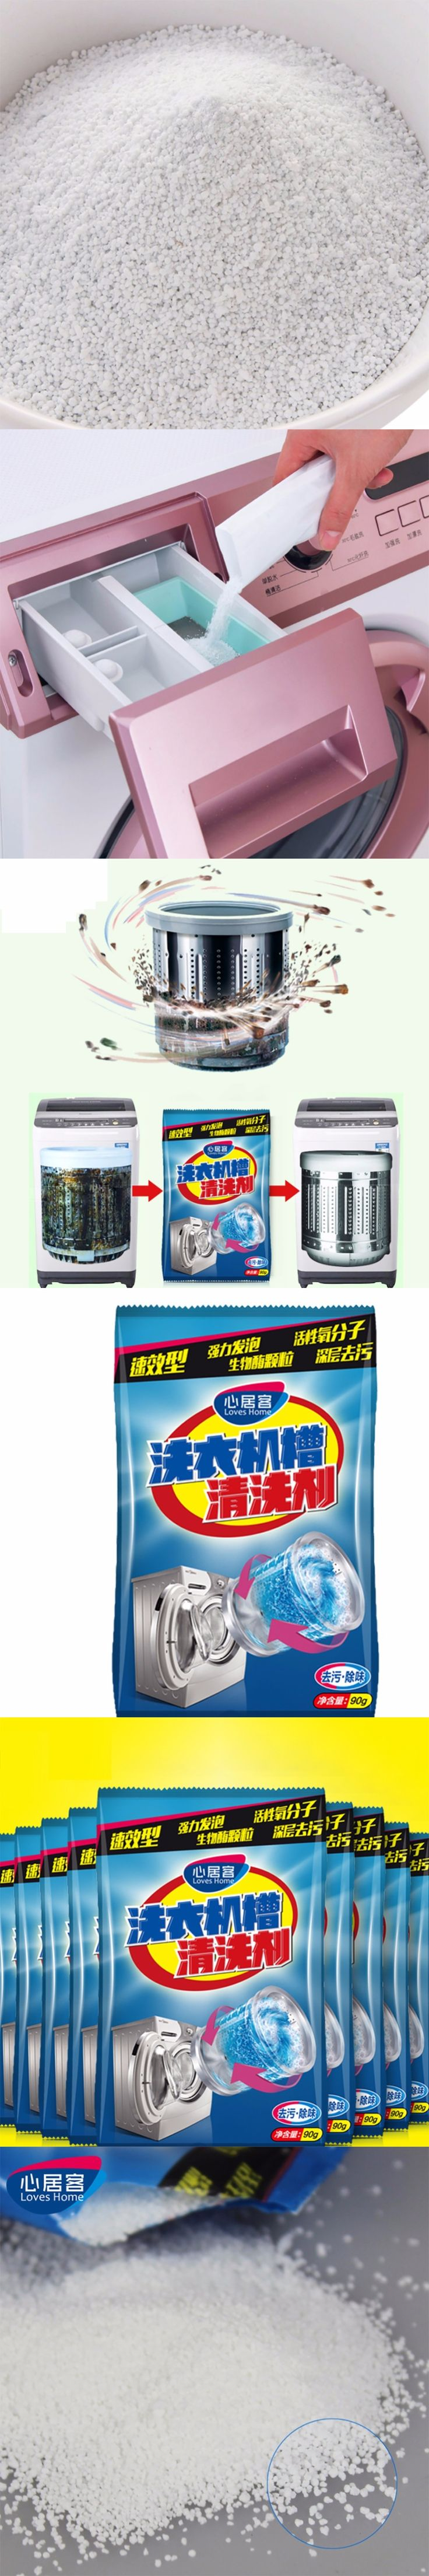 Hot Japan Imported Washing Machine Tank Cleaning Deodorization Cleaning Agent Decontamination Washing Tank Tube Cleaner New